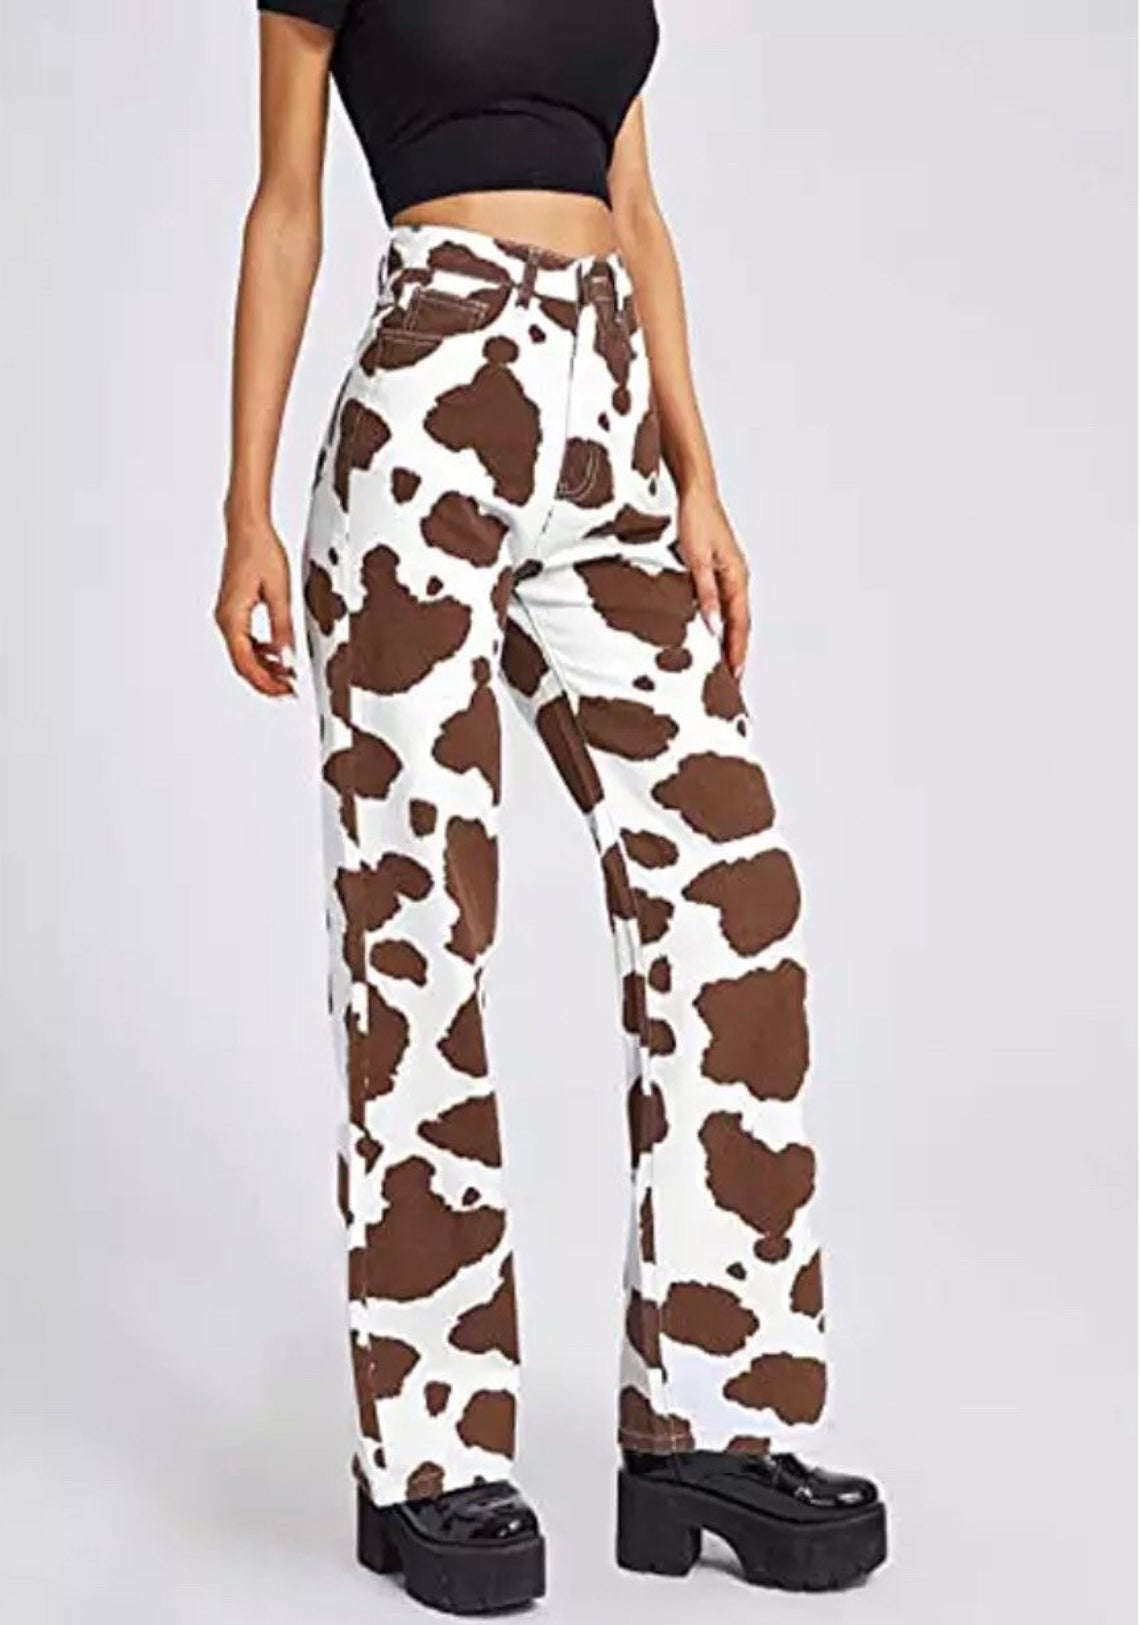 Cow print mom jeans